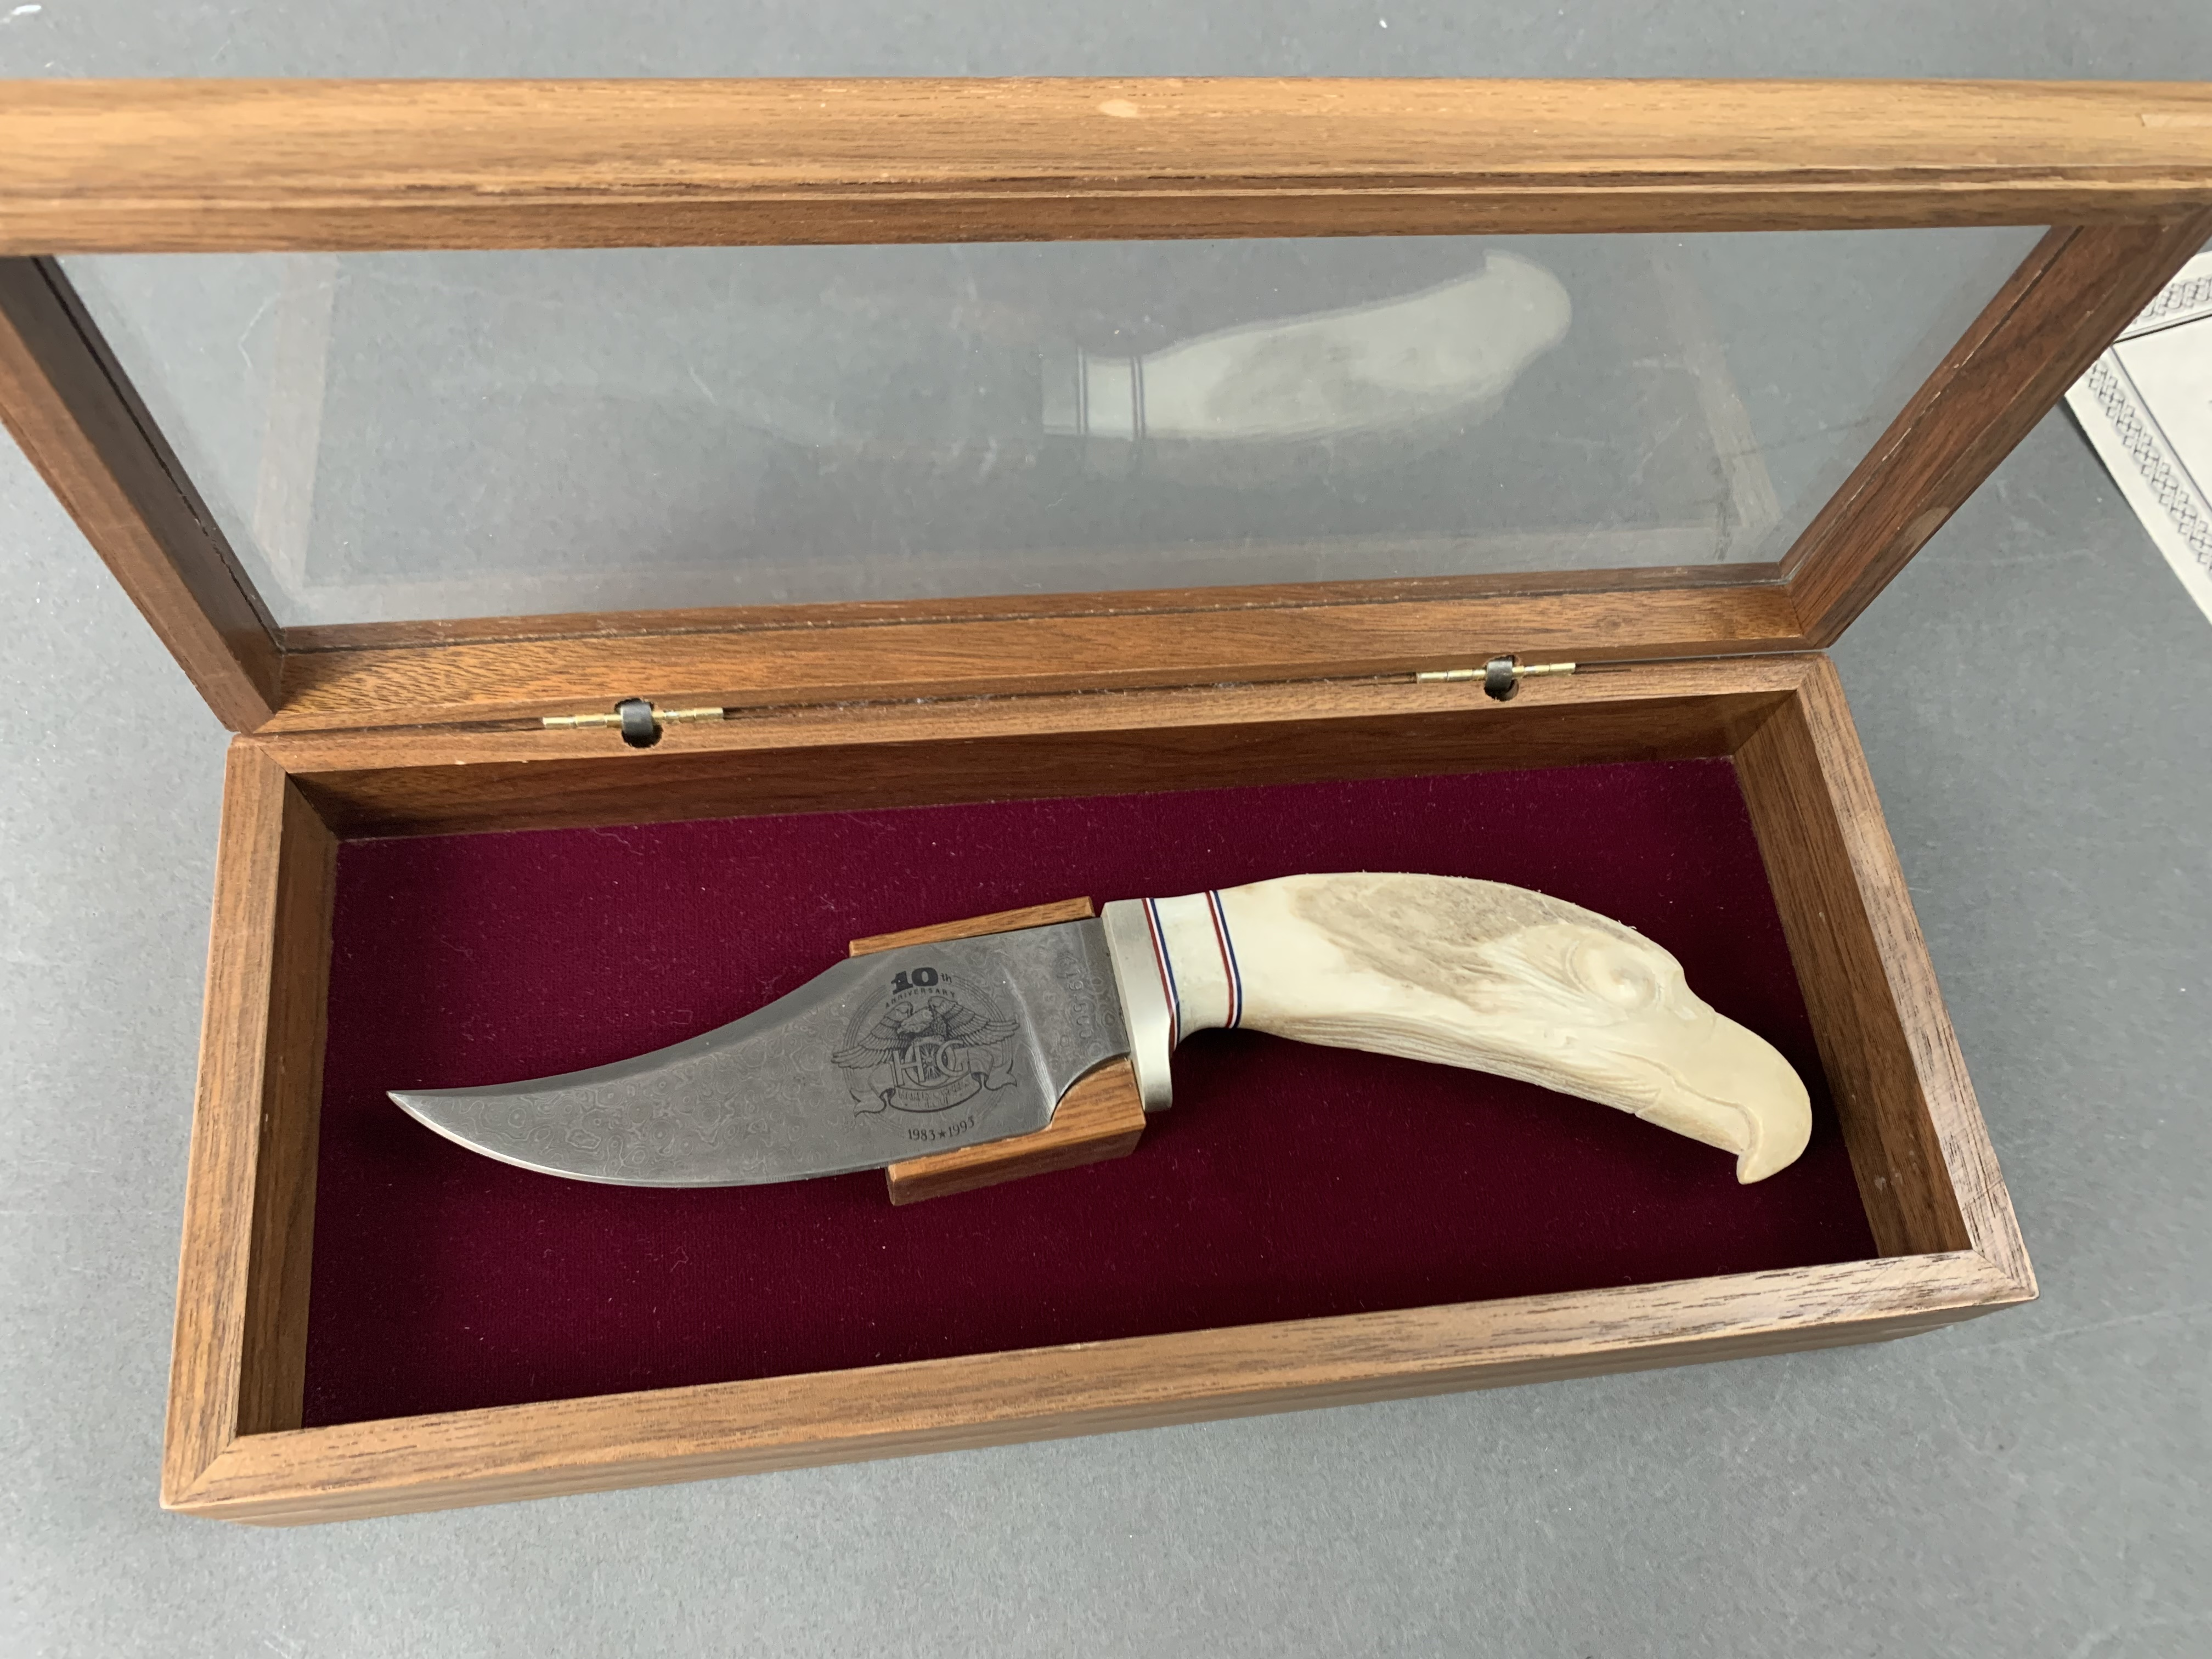 Harley Owner Group 10th Anniversary Damascus knife With Hand Carverd Eagle No two are the same